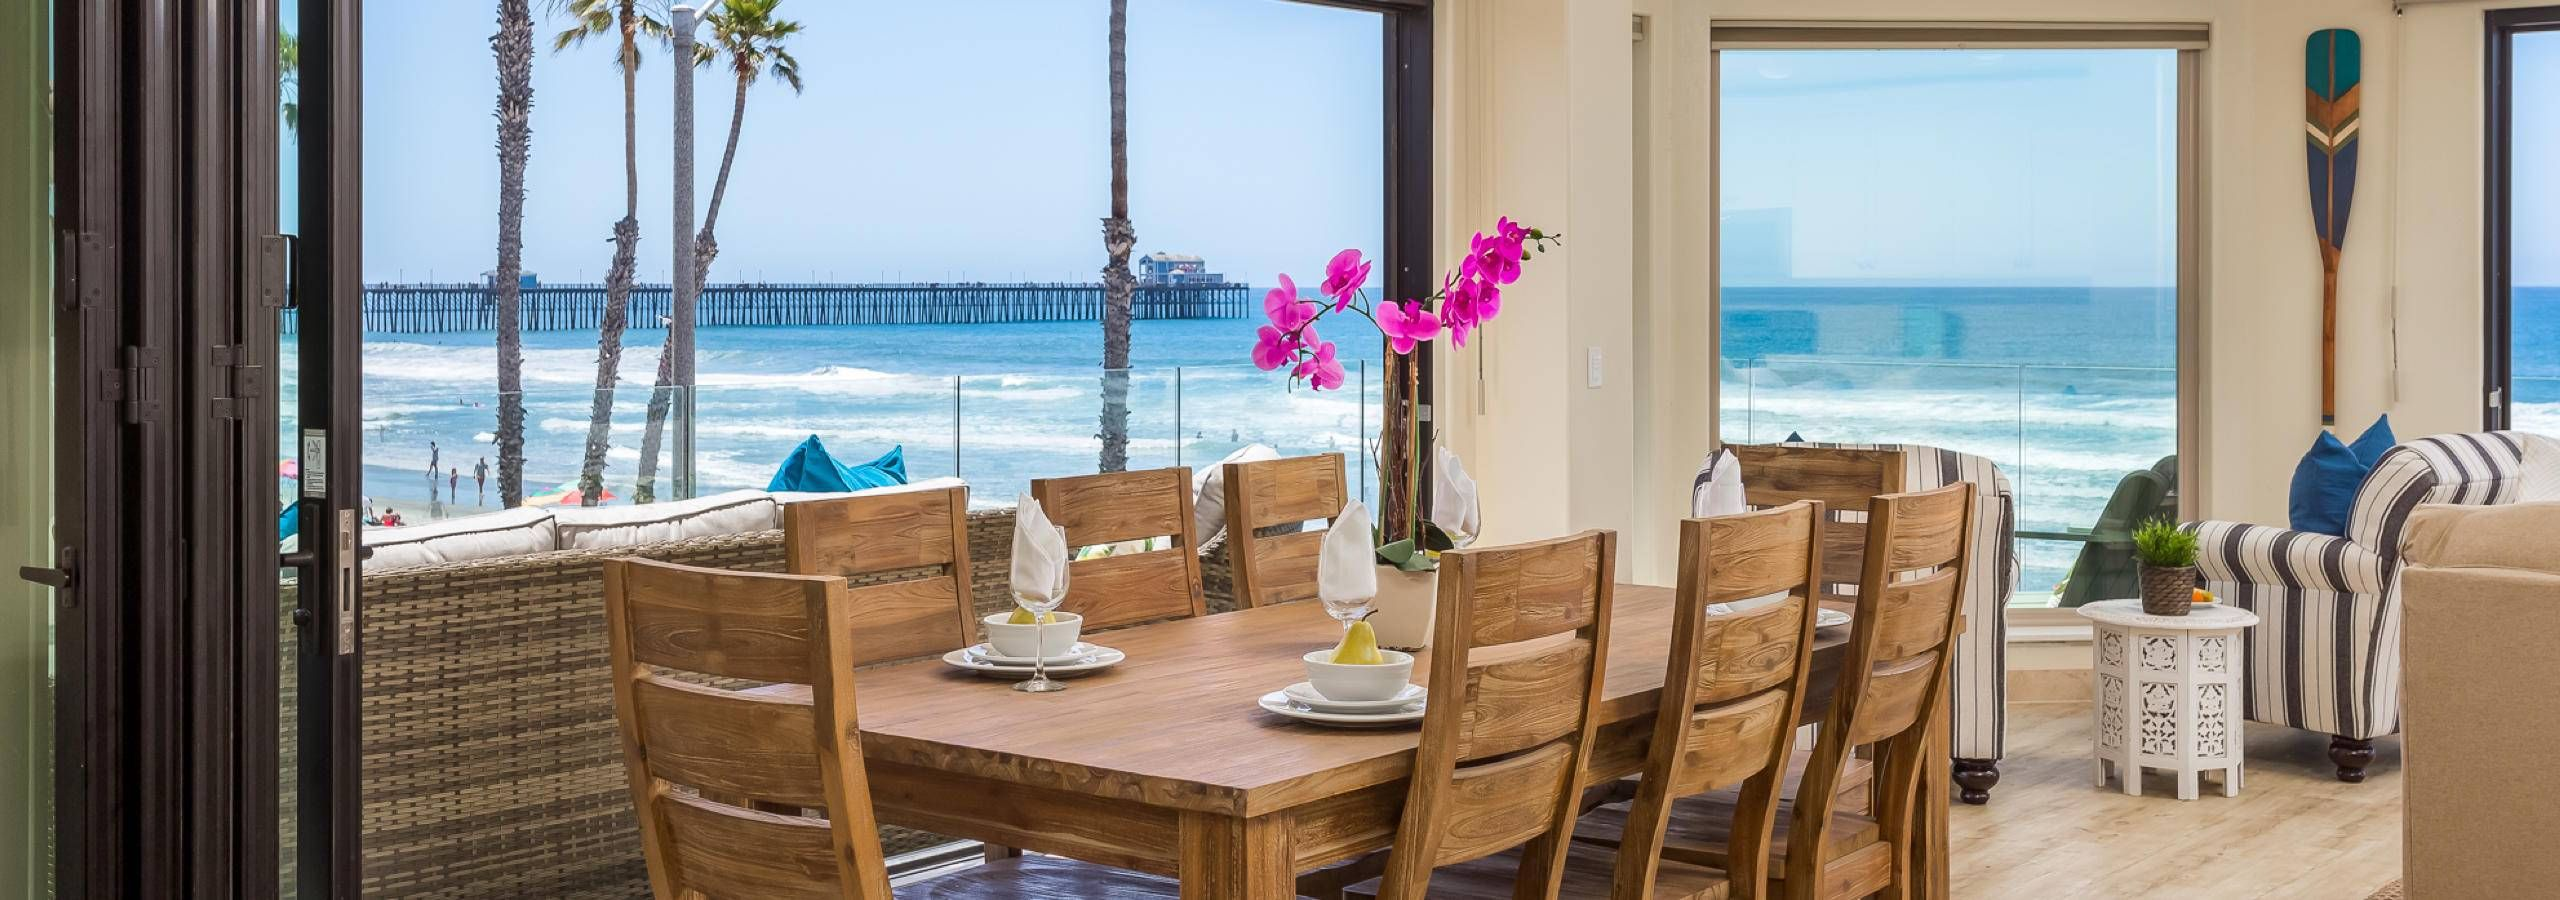 Beachfront only vacation rentals california beach house